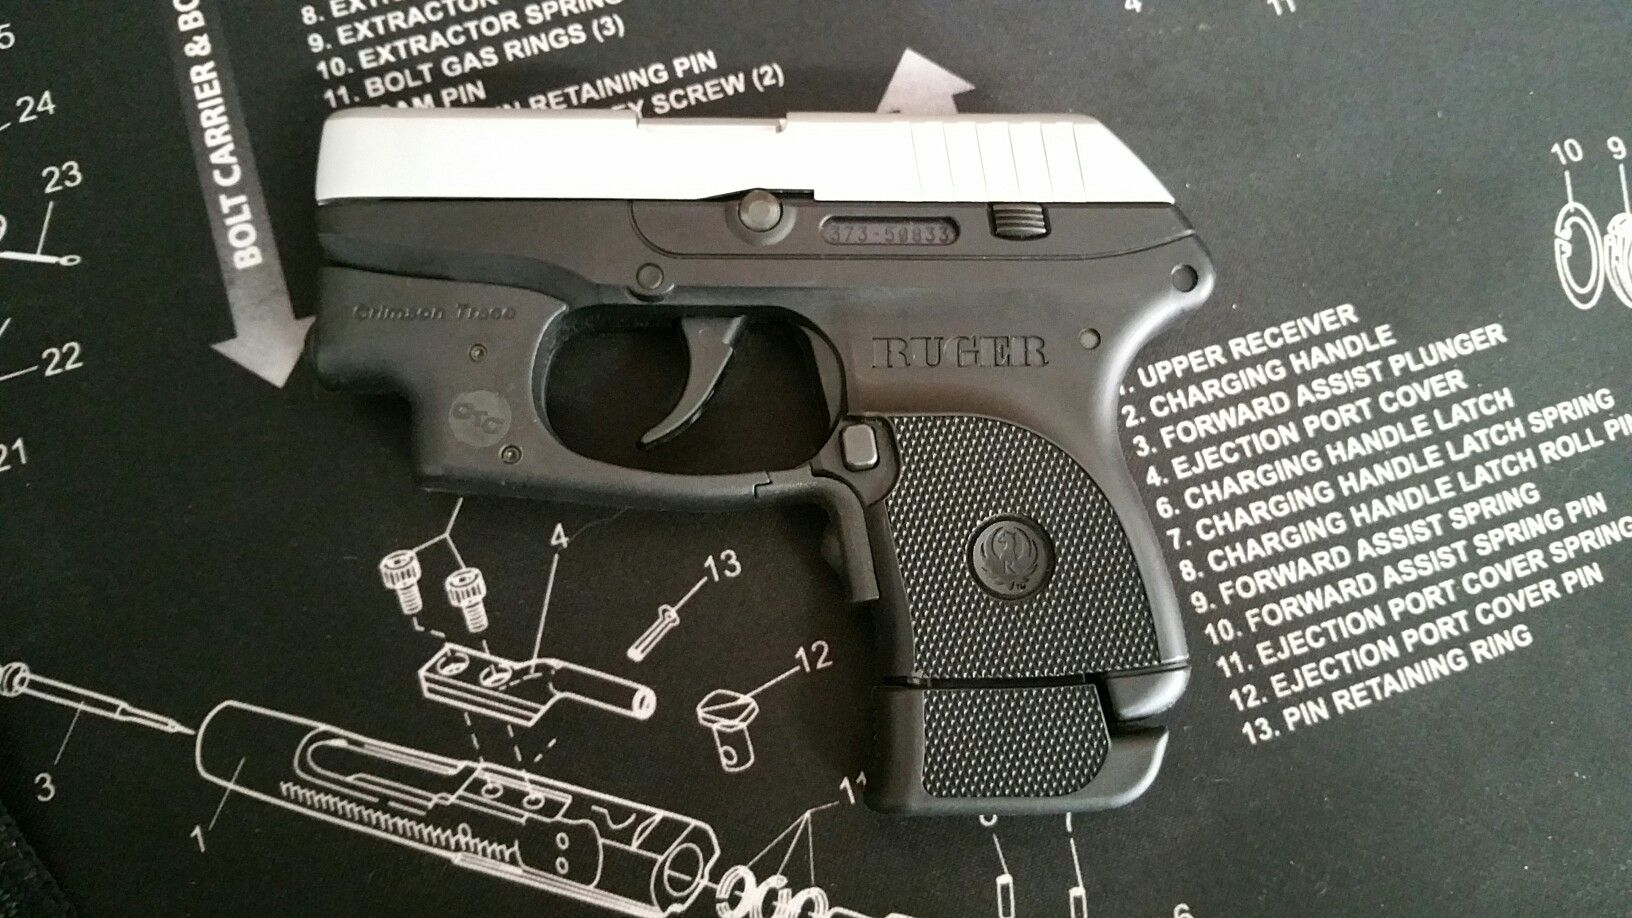 b85130bf13b4 Pistols · Firearms · Shotguns · Ruger LCP w 7 round extended  magazine.Loading that magazine is a pain!